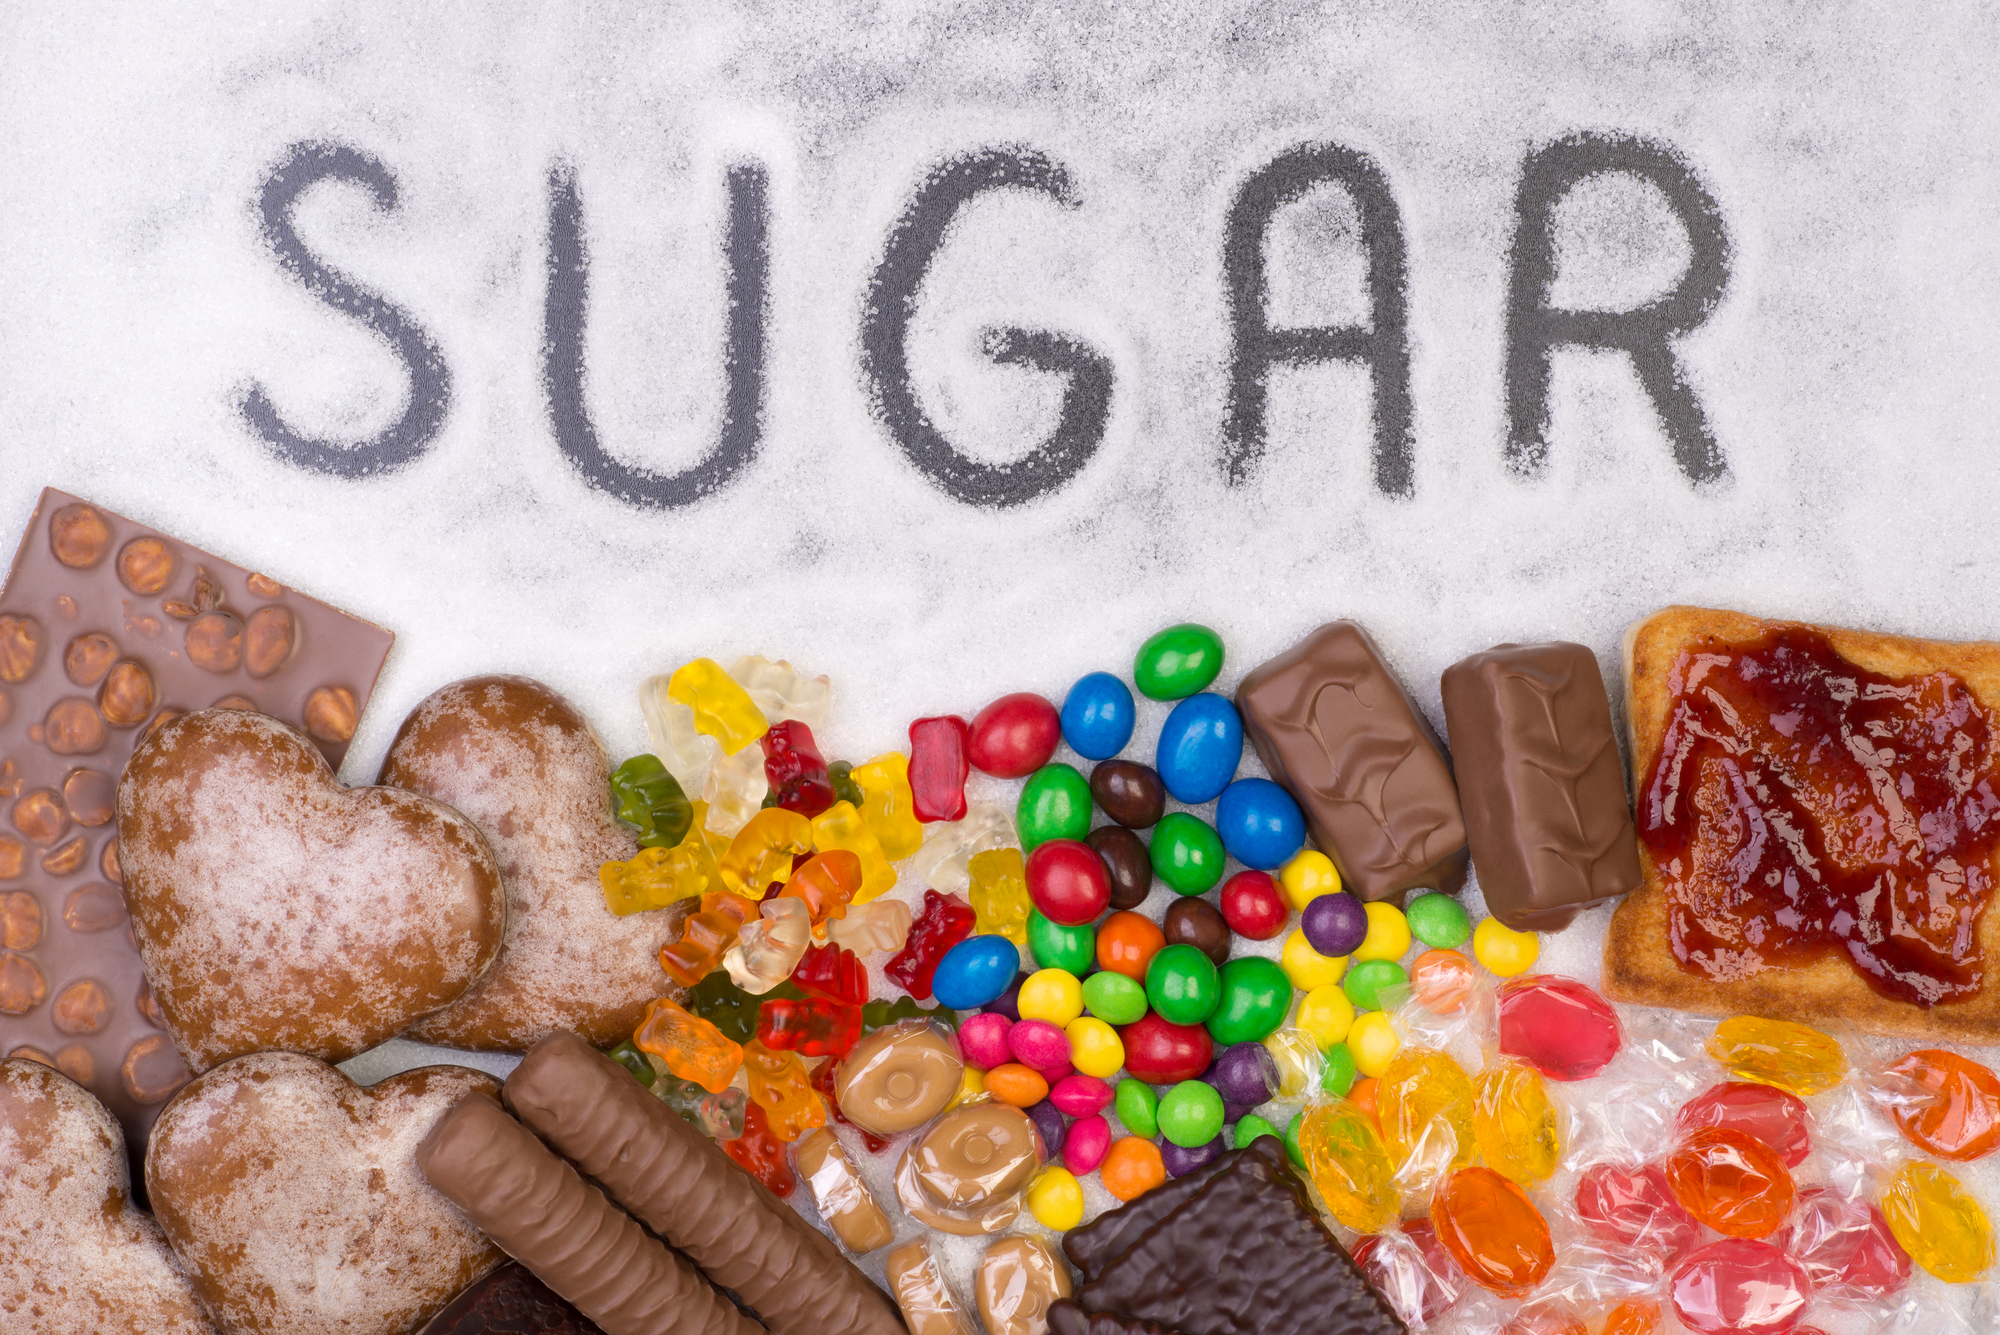 Food containing sugar